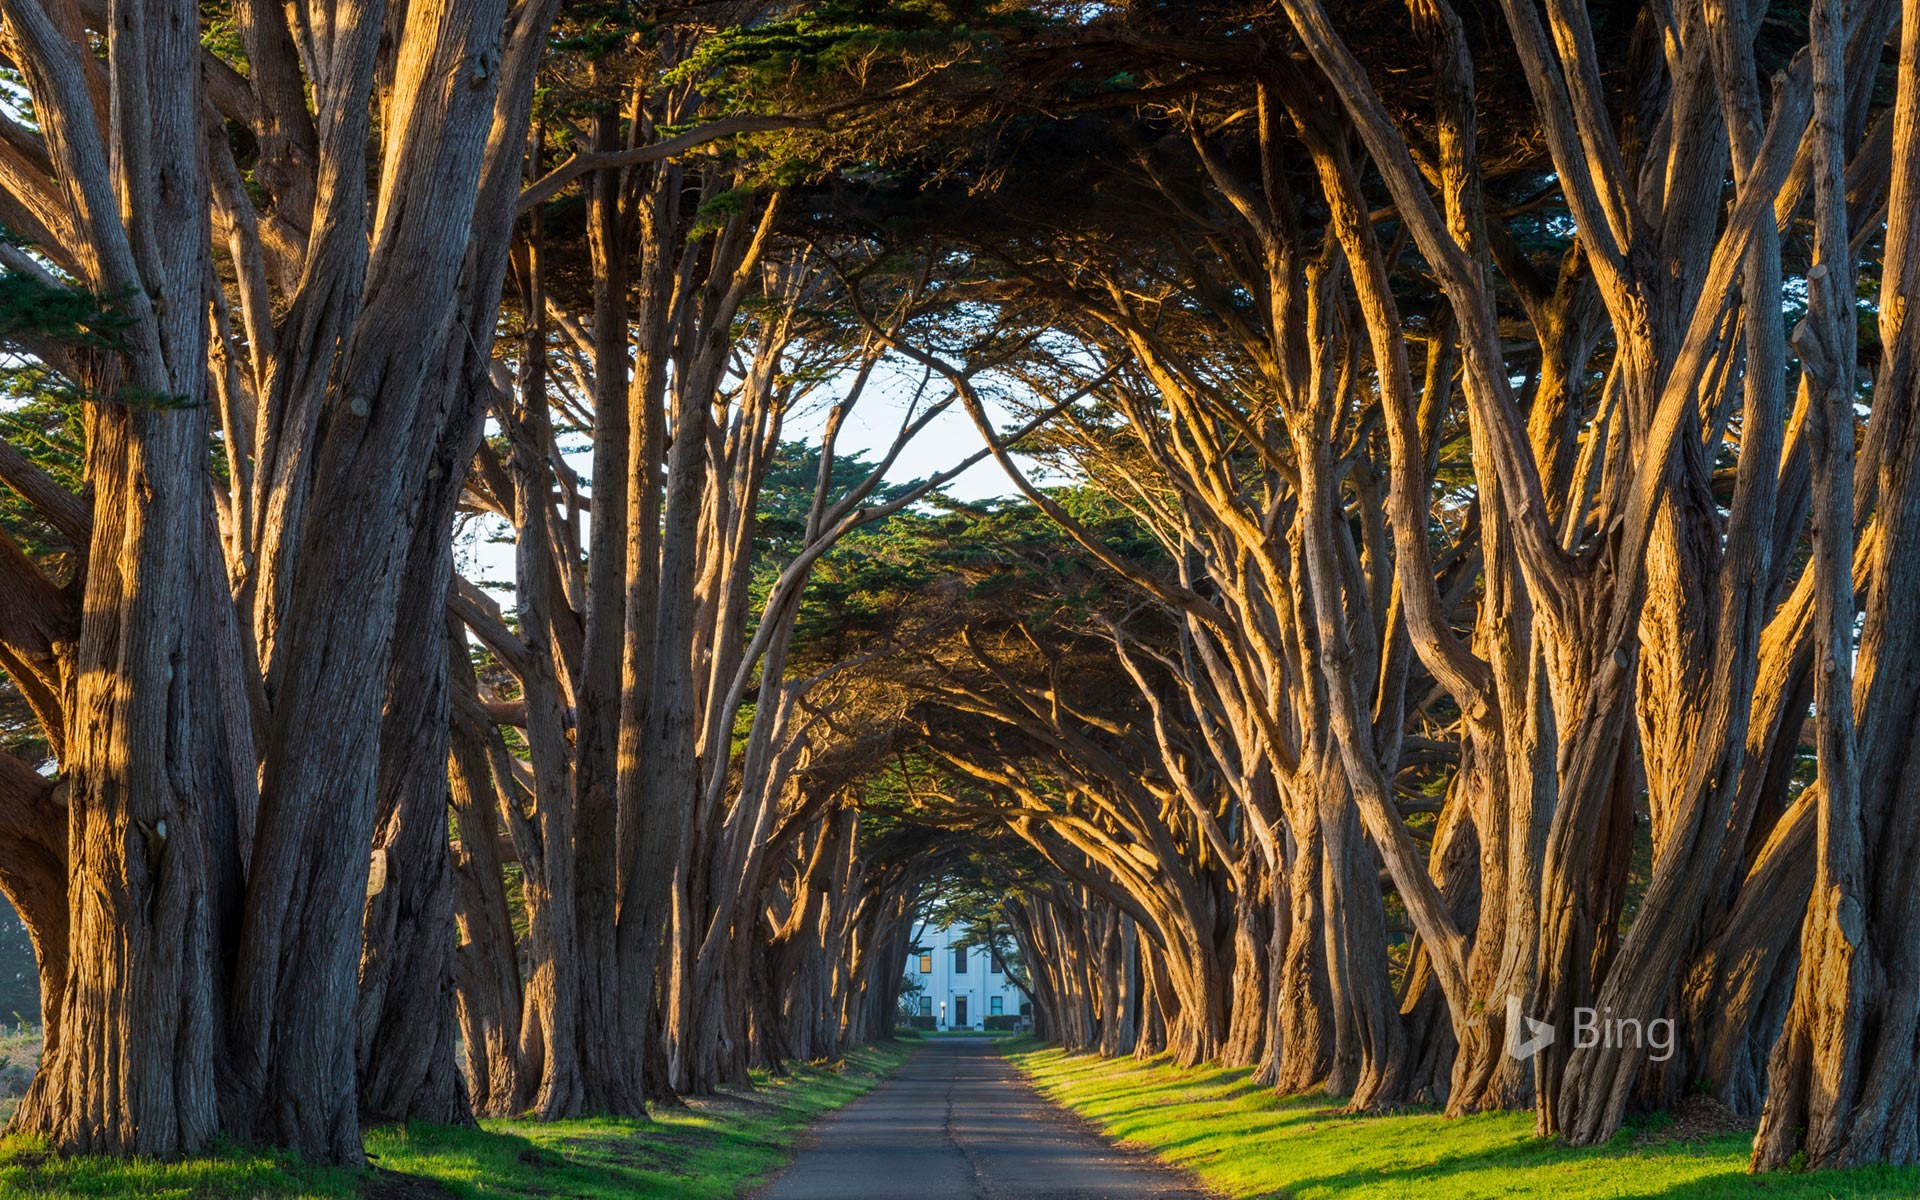 Cypress tree tunnel at Point Reyes National Seashore in California